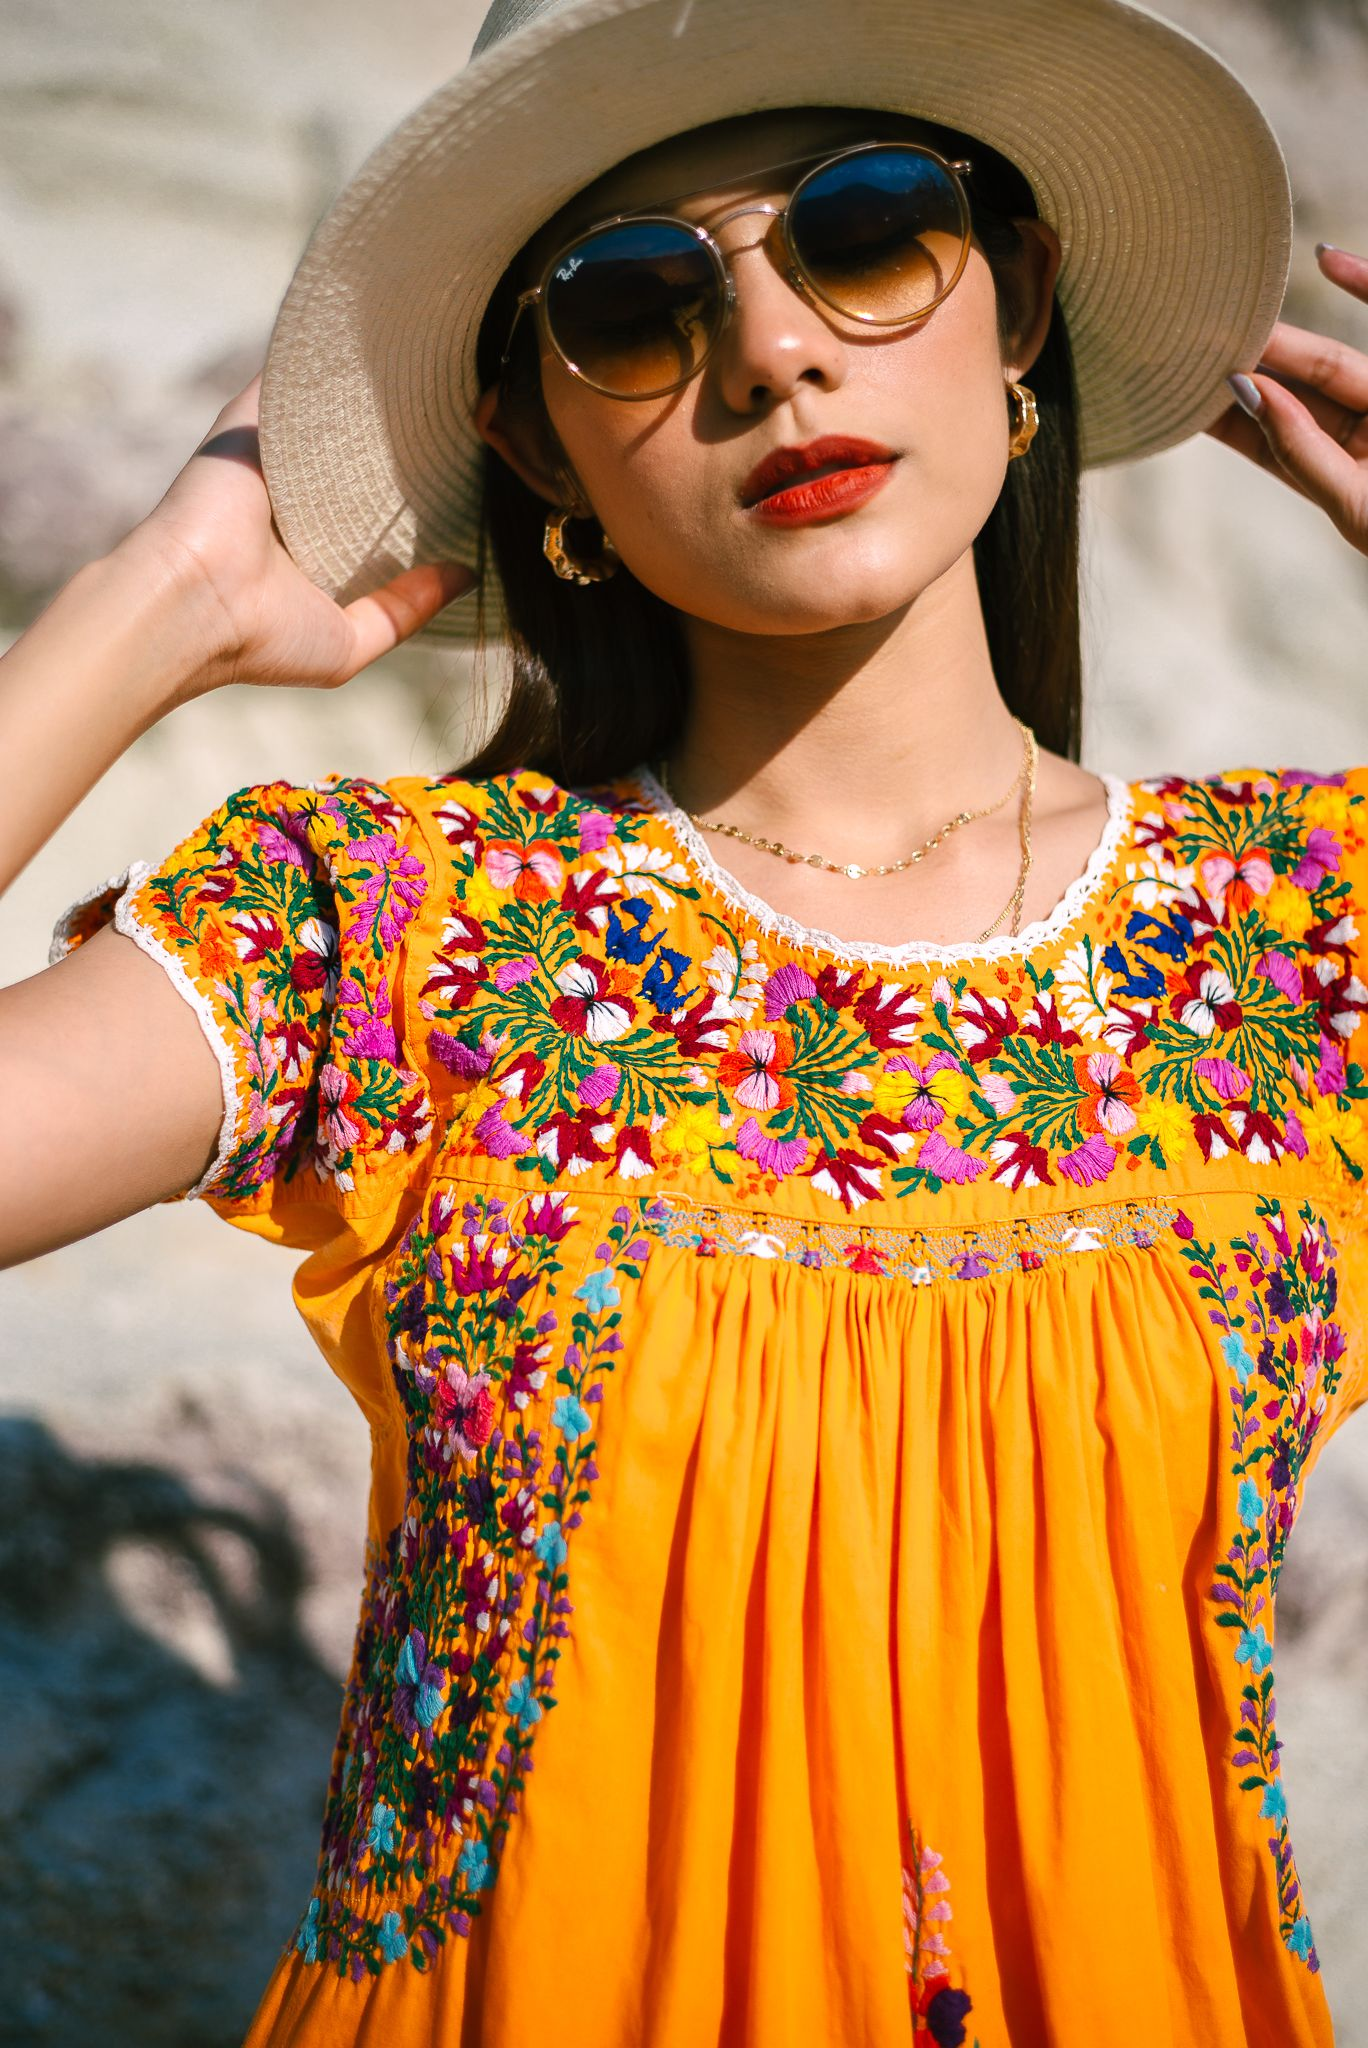 Vintage Oaxacan Maxi Dress Mexican Dress With Floral Embroidery Boho Orange Cotton Floral Fiesta Dress Mexican Dresses Fiesta Dress Traditional Mexican Dress [ 2048 x 1368 Pixel ]